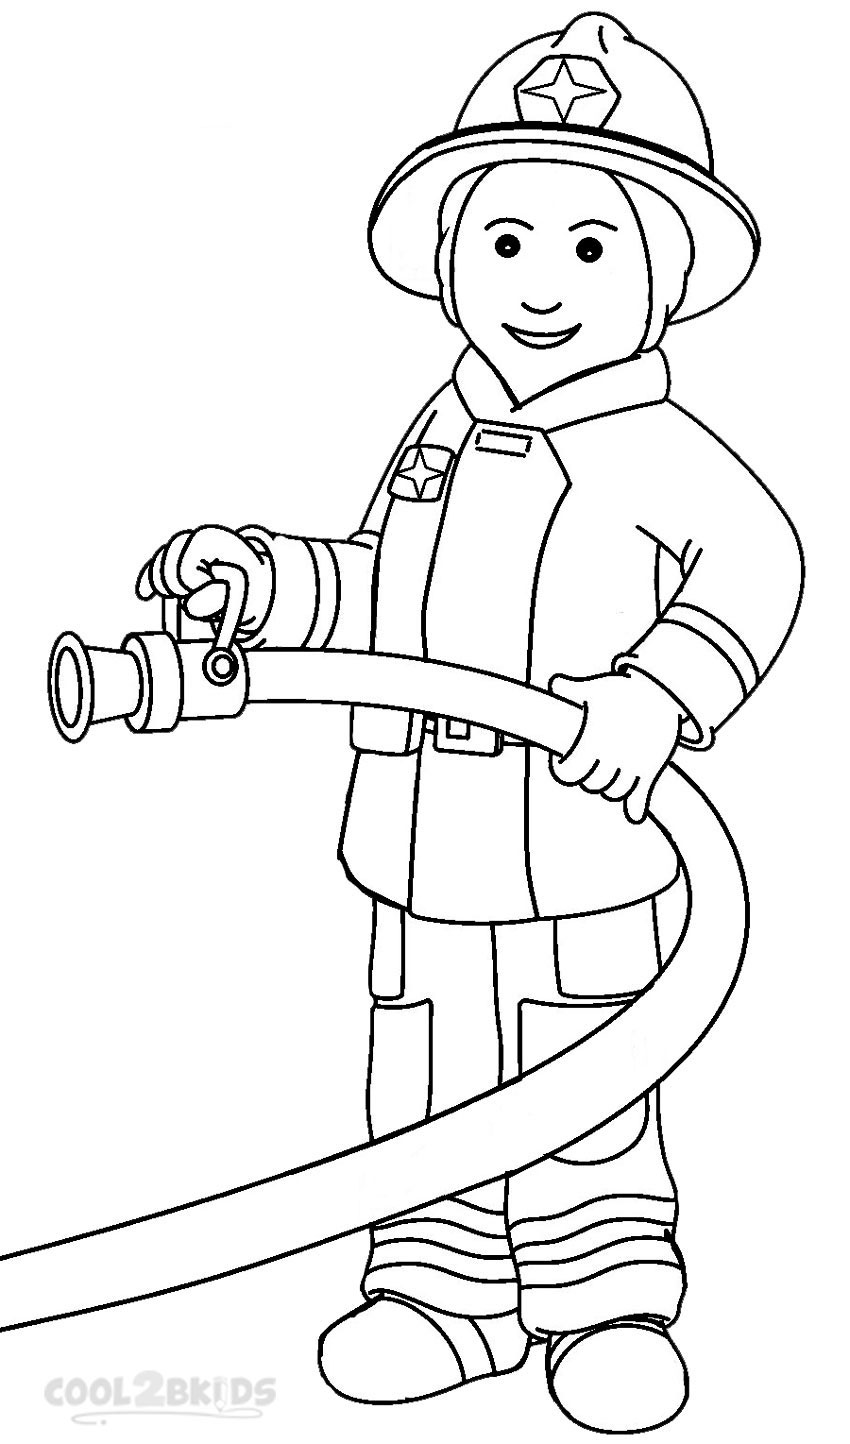 coloring book pages fireman hat - photo#29